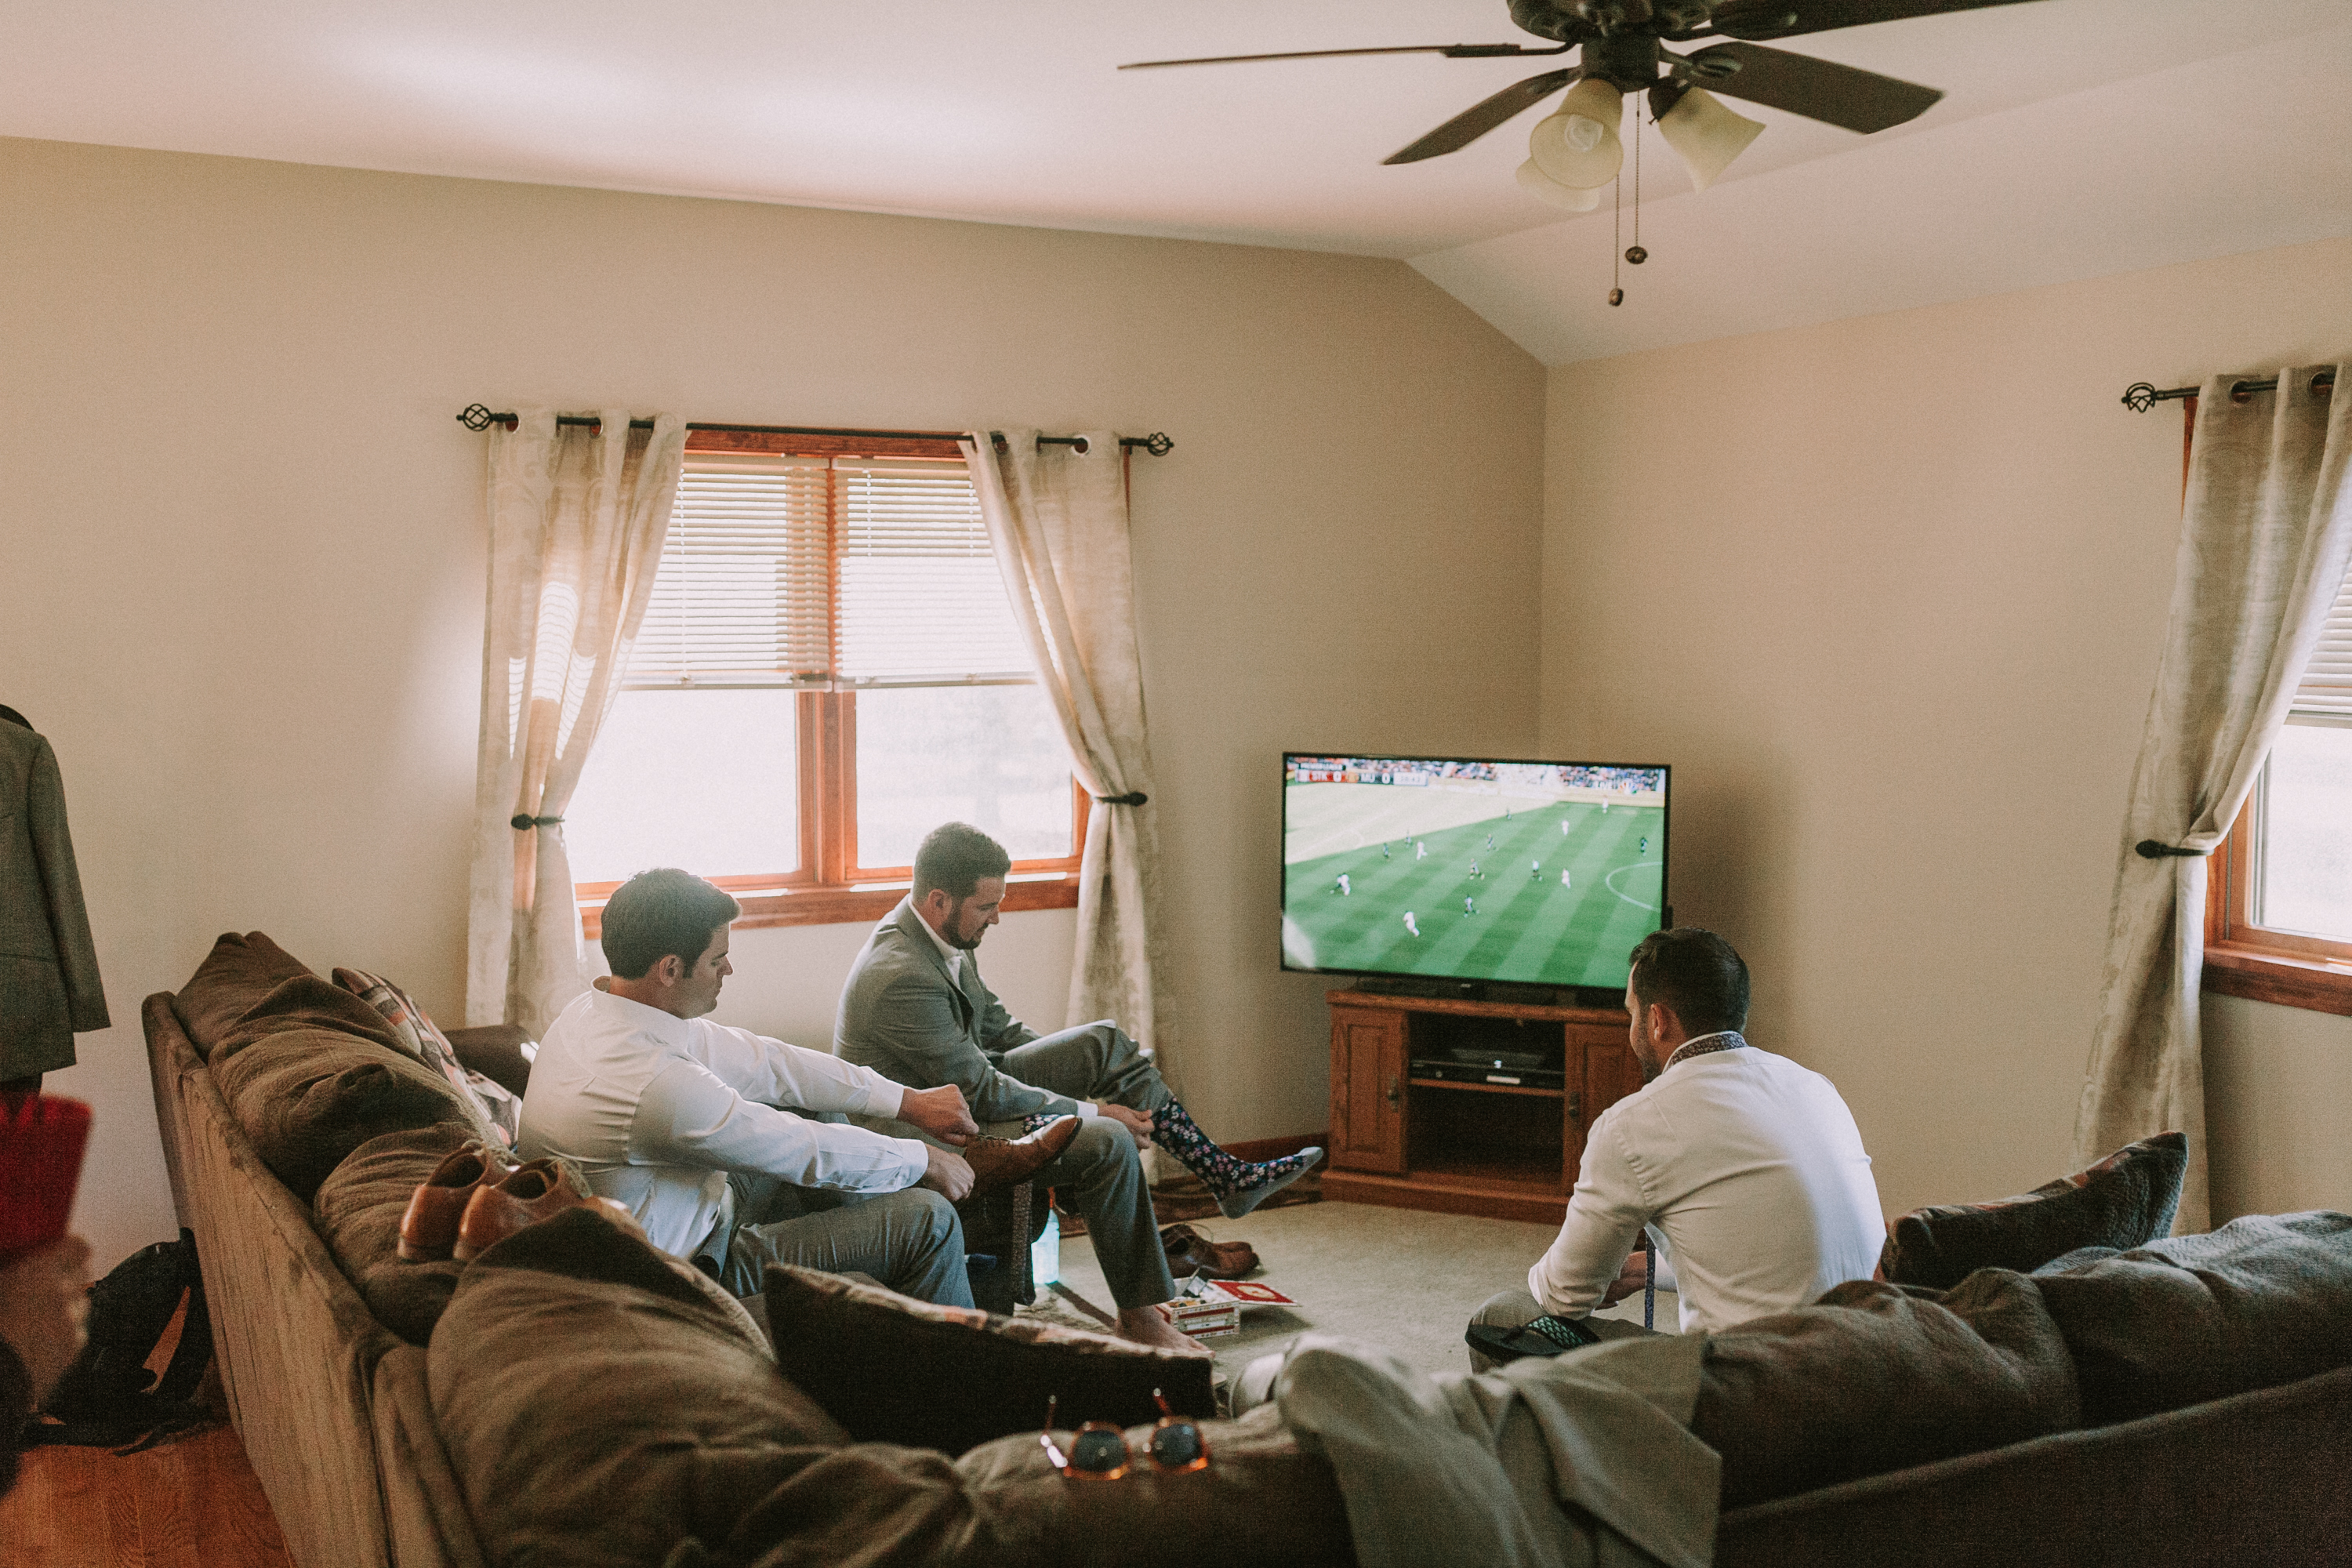 groomsmen watching the game, groomsmen hanging out, groomsmen watching soccer, groomsmen putting on shoes